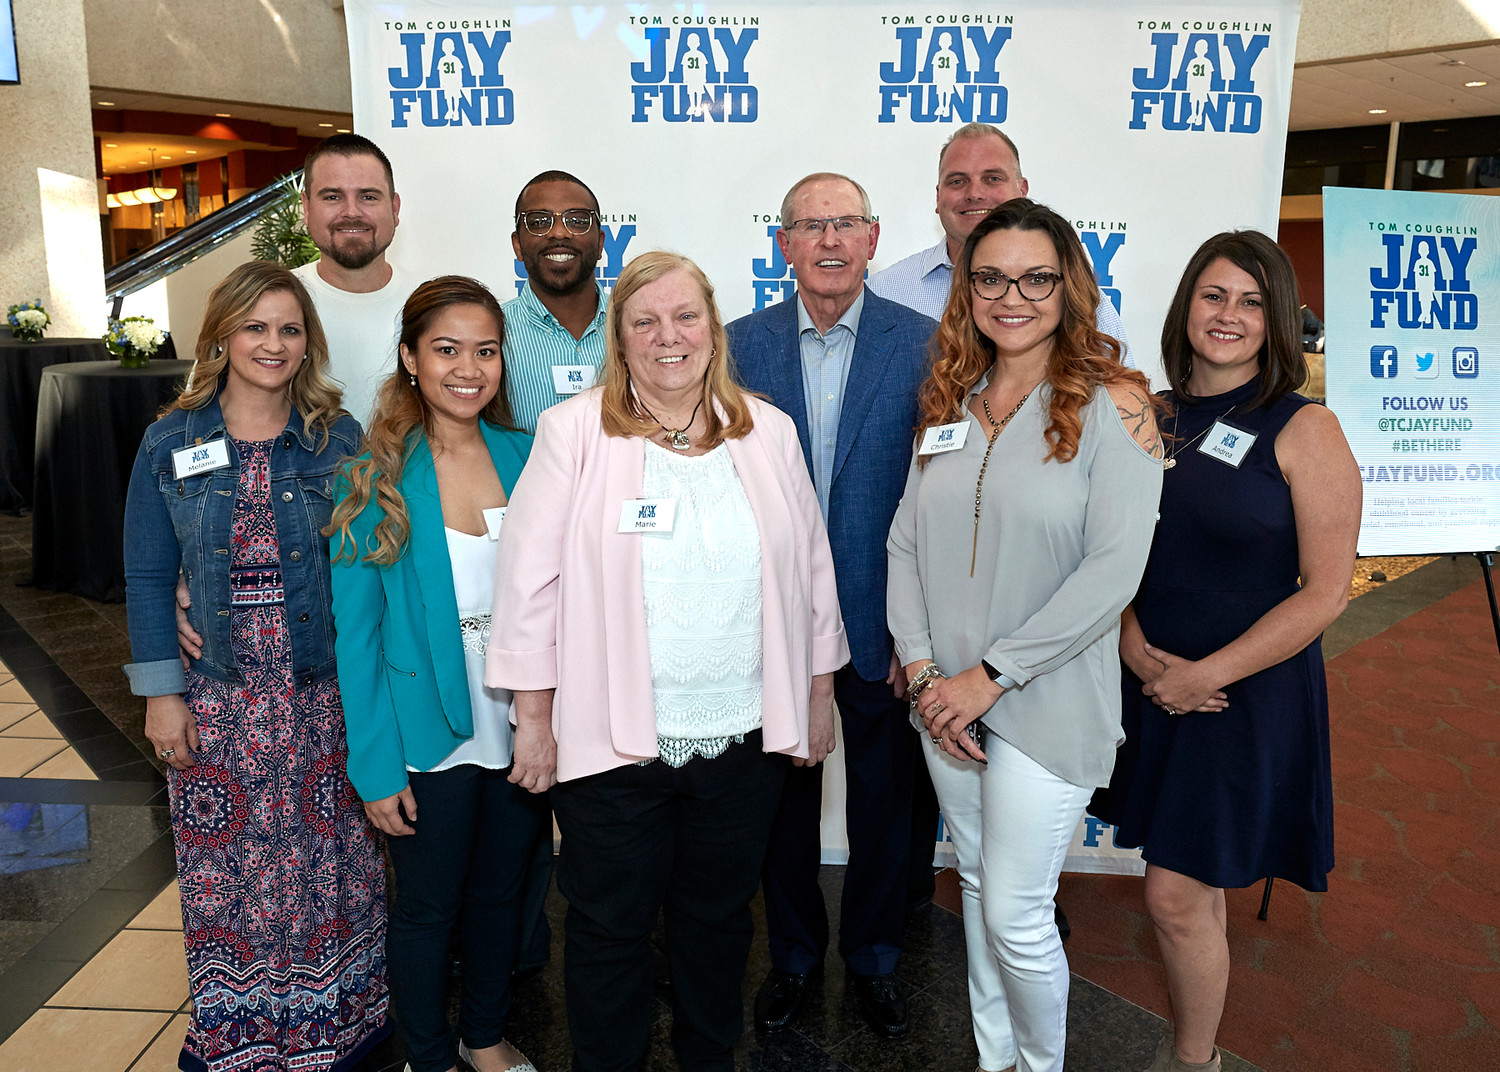 Tom Coughlin gathers with the evening's VIP hosts, who are Jay Fund families whose child has tackled or is tackling cancer.